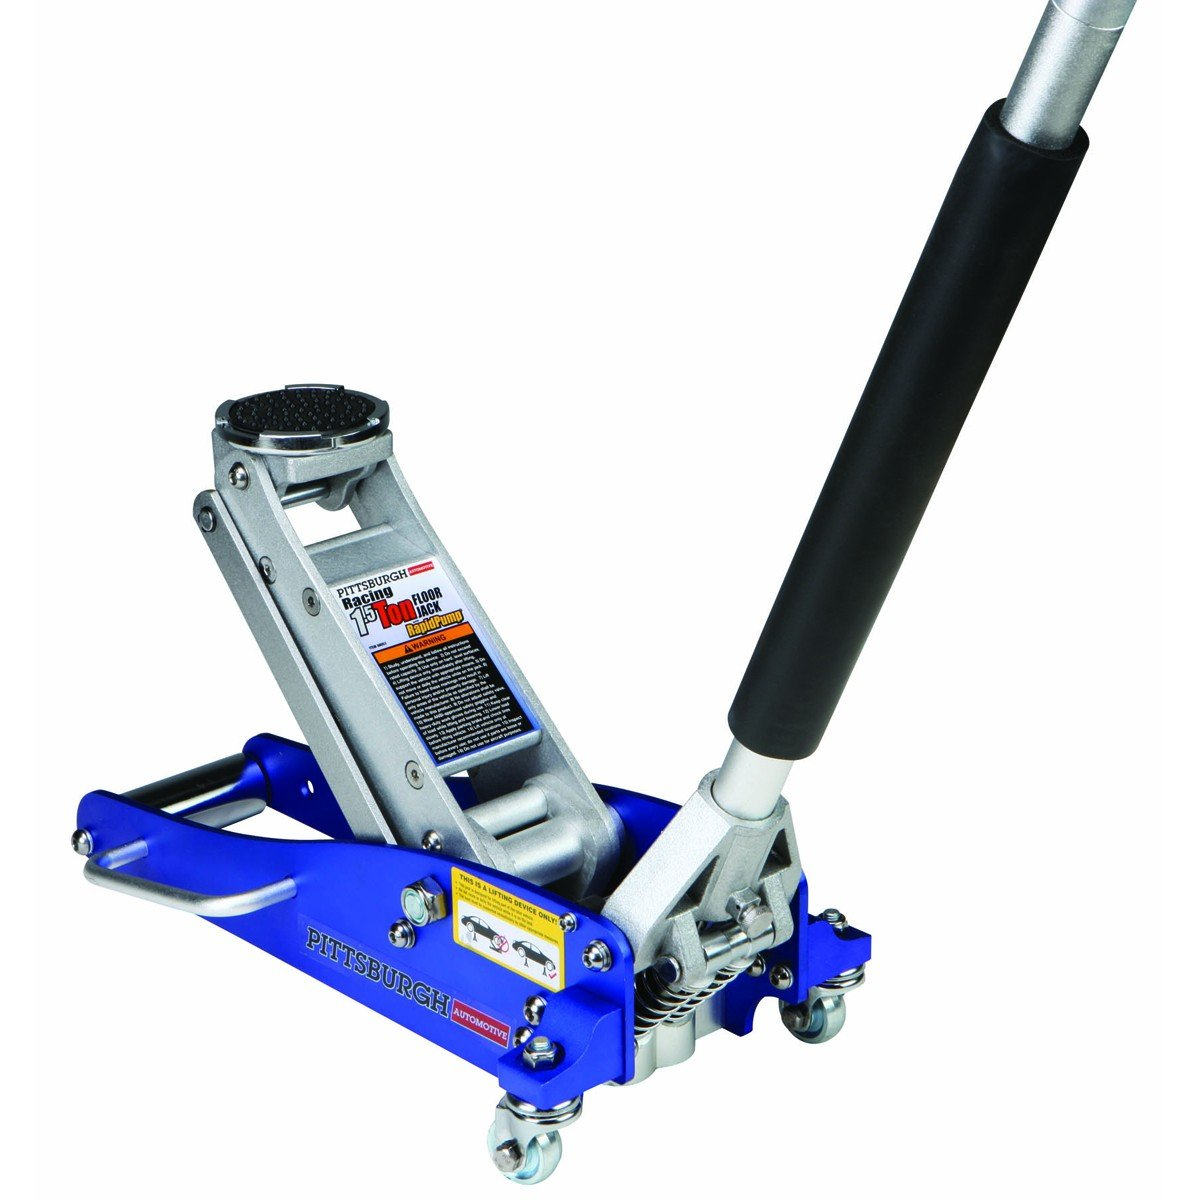 1.5 Ton Compact Aluminum Racing Jack with Rapid Pump by PITTSBURGH At The Neighborhood Corner Store